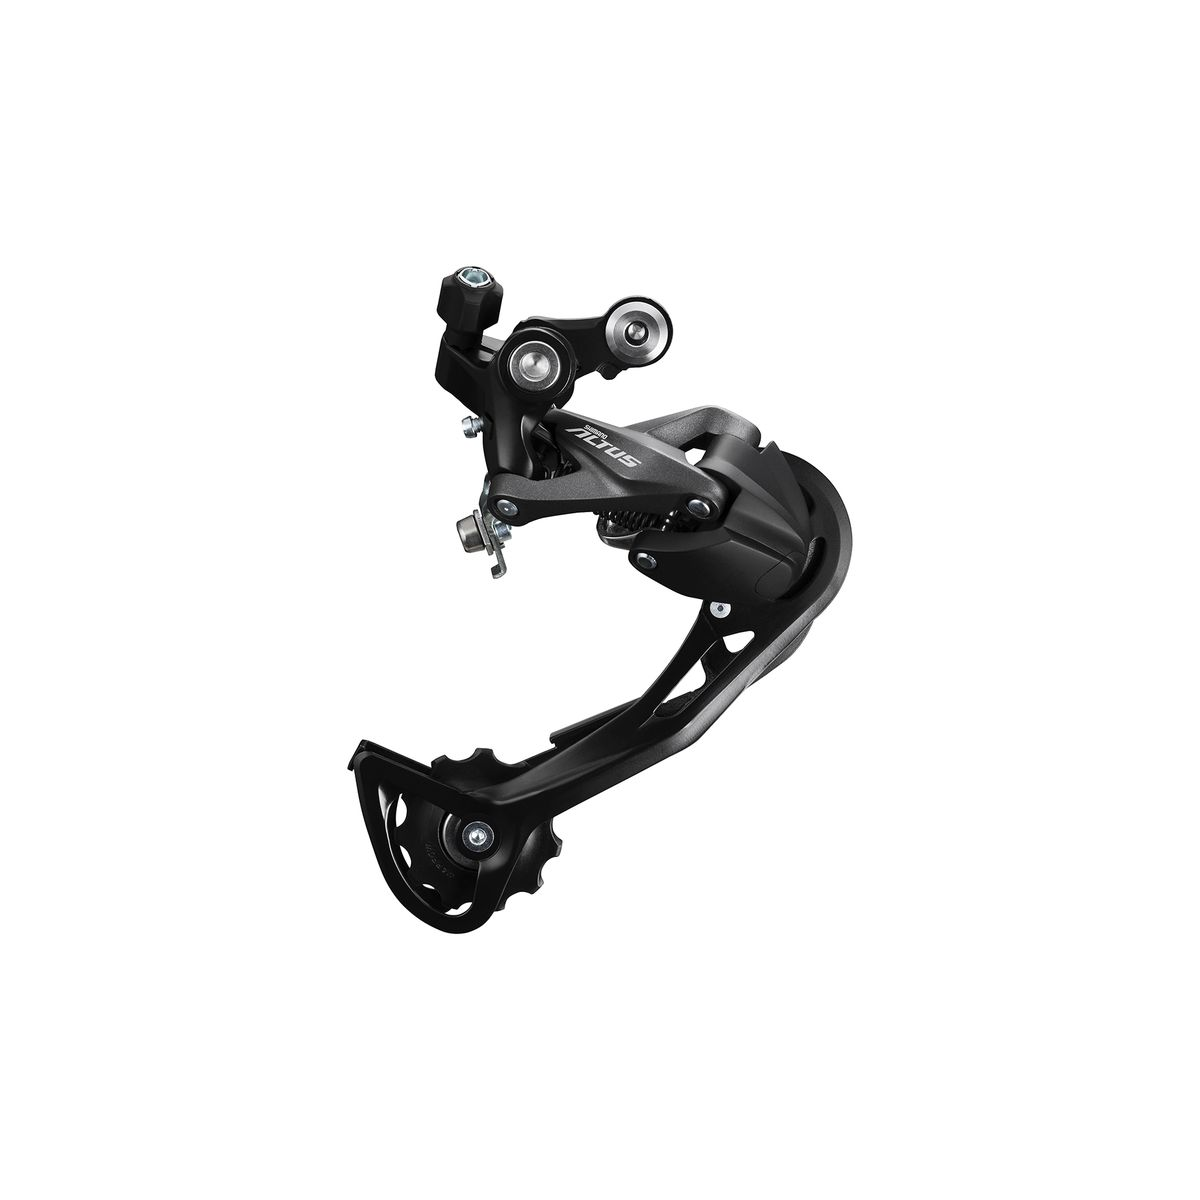 Altus RD-M2000 SGS Shadow rear derailleur